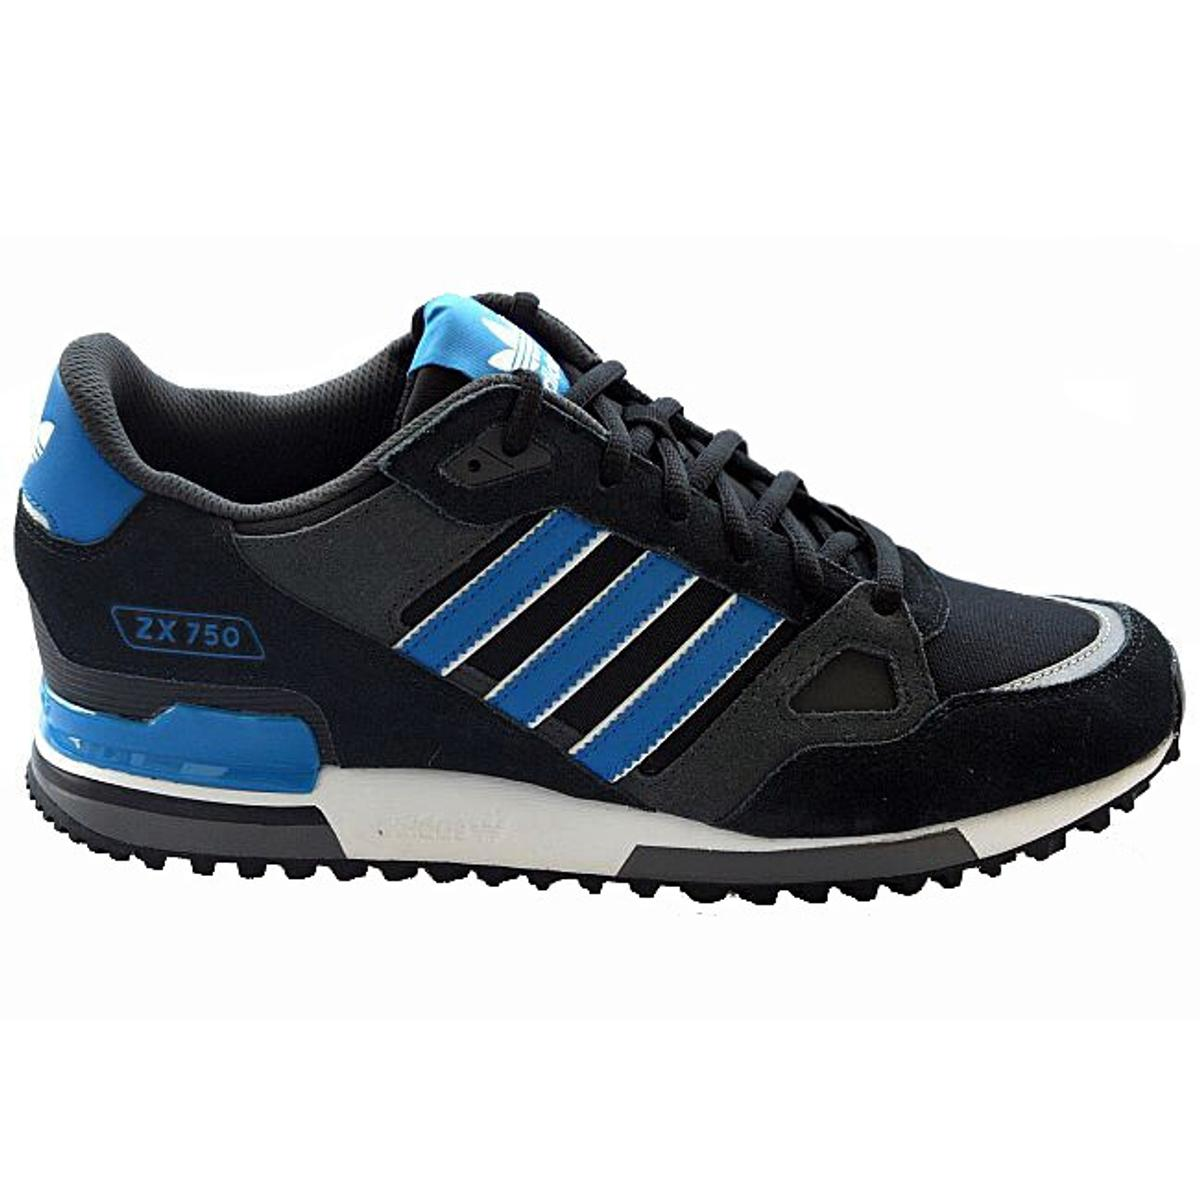 store on feet shots of newest collection **ADIDAS ZX 750 schwarz/blau Gr. 43 1/3 NEU**